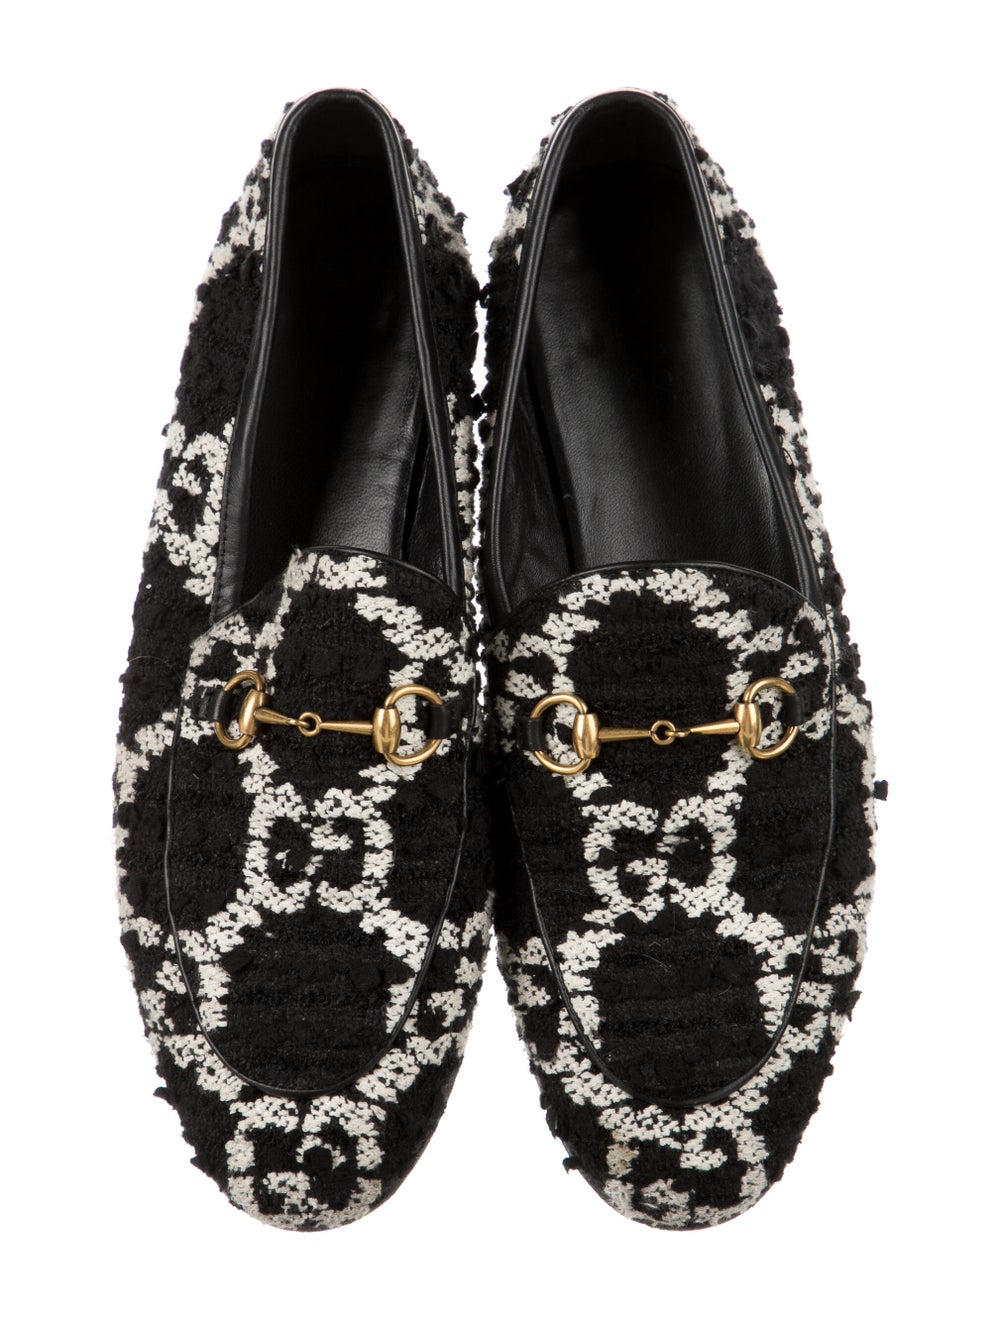 Gucci Horsebit Accent Patterned Loafers Black - image 3